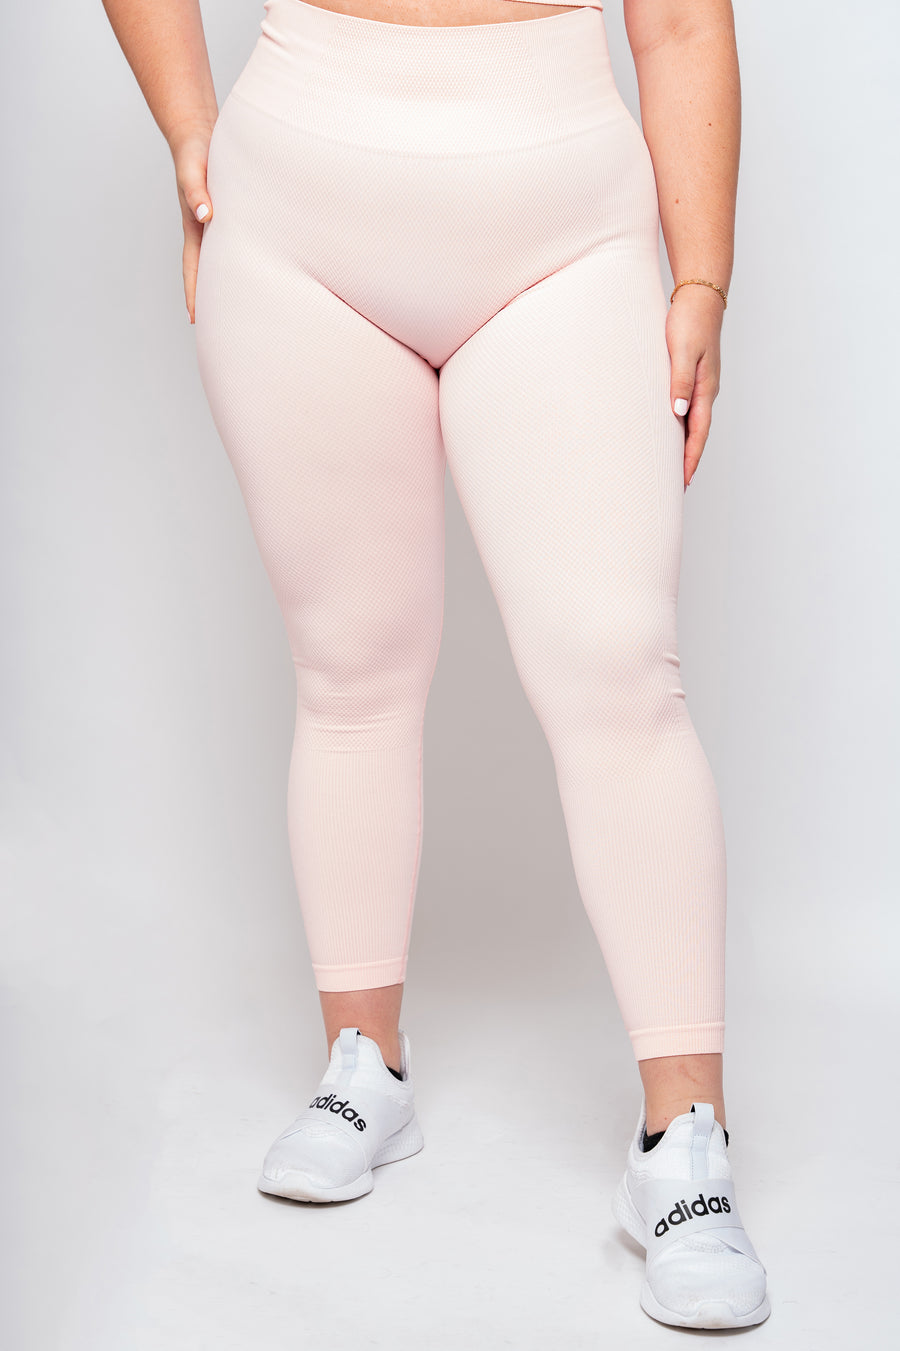 Light Pink Seamless Lifestyle Leggings